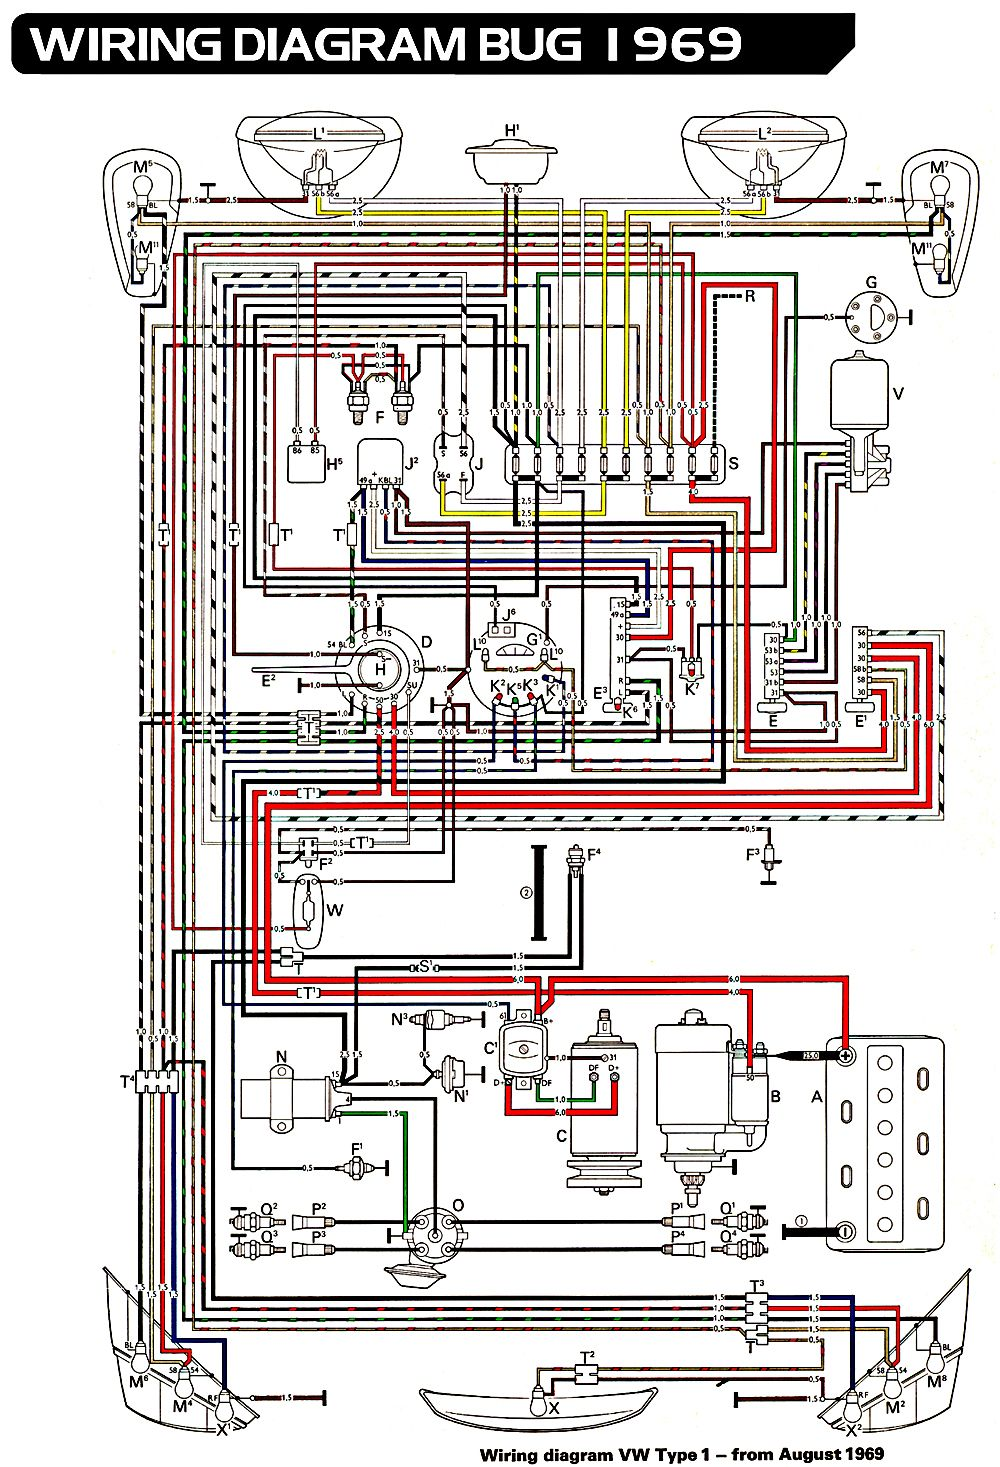 6d75c15875479254f26a32a8499d9044 volkswagen beetle wiring diagram 1966 vw beetle wiring 1969 bug wiring diagram at creativeand.co